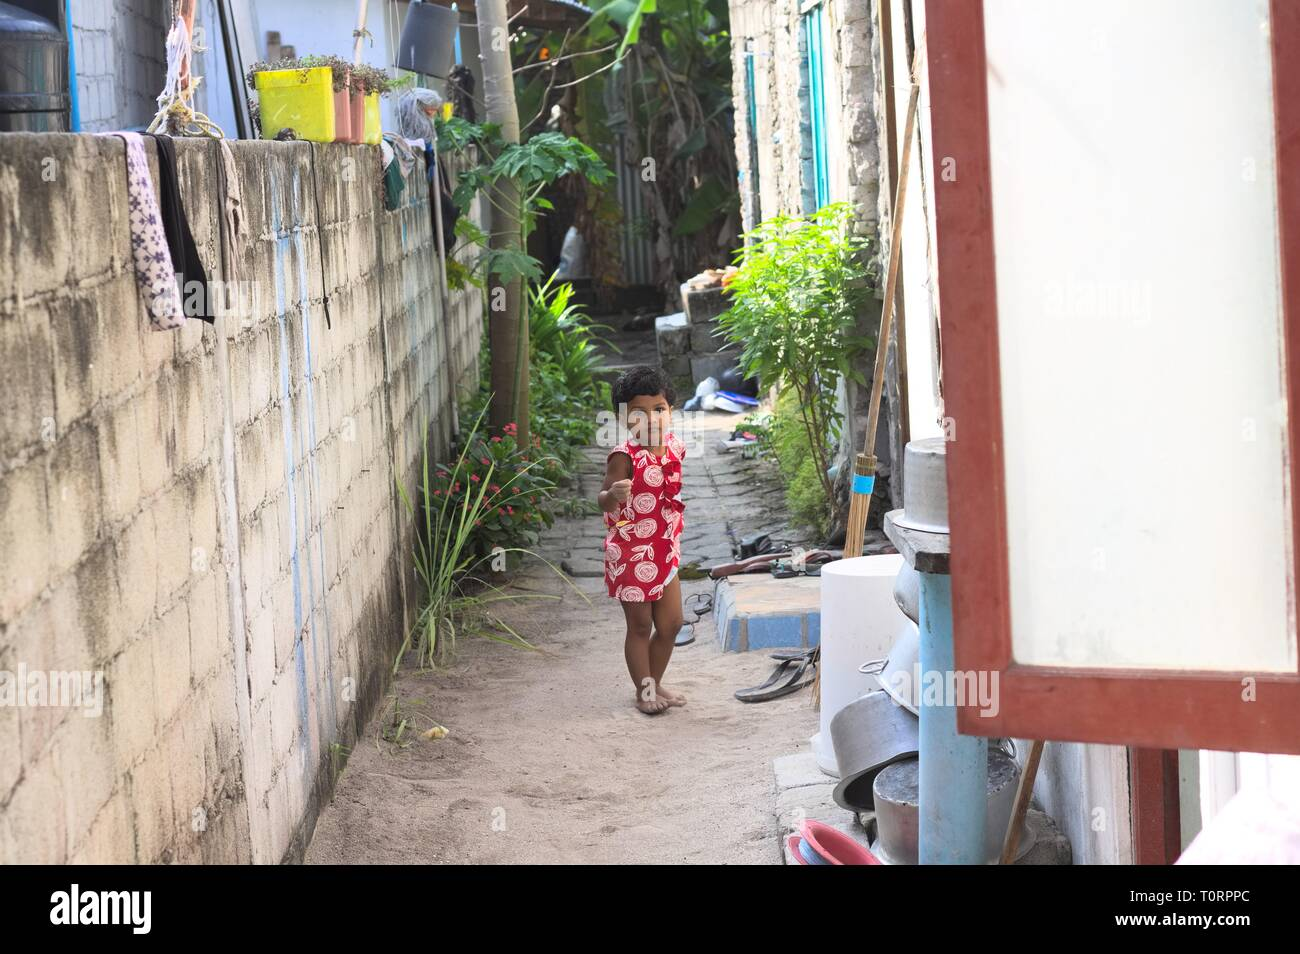 Ari Atoll, Maldives - 24 December 2018: A child with a red dress is playing outdoor - Stock Image